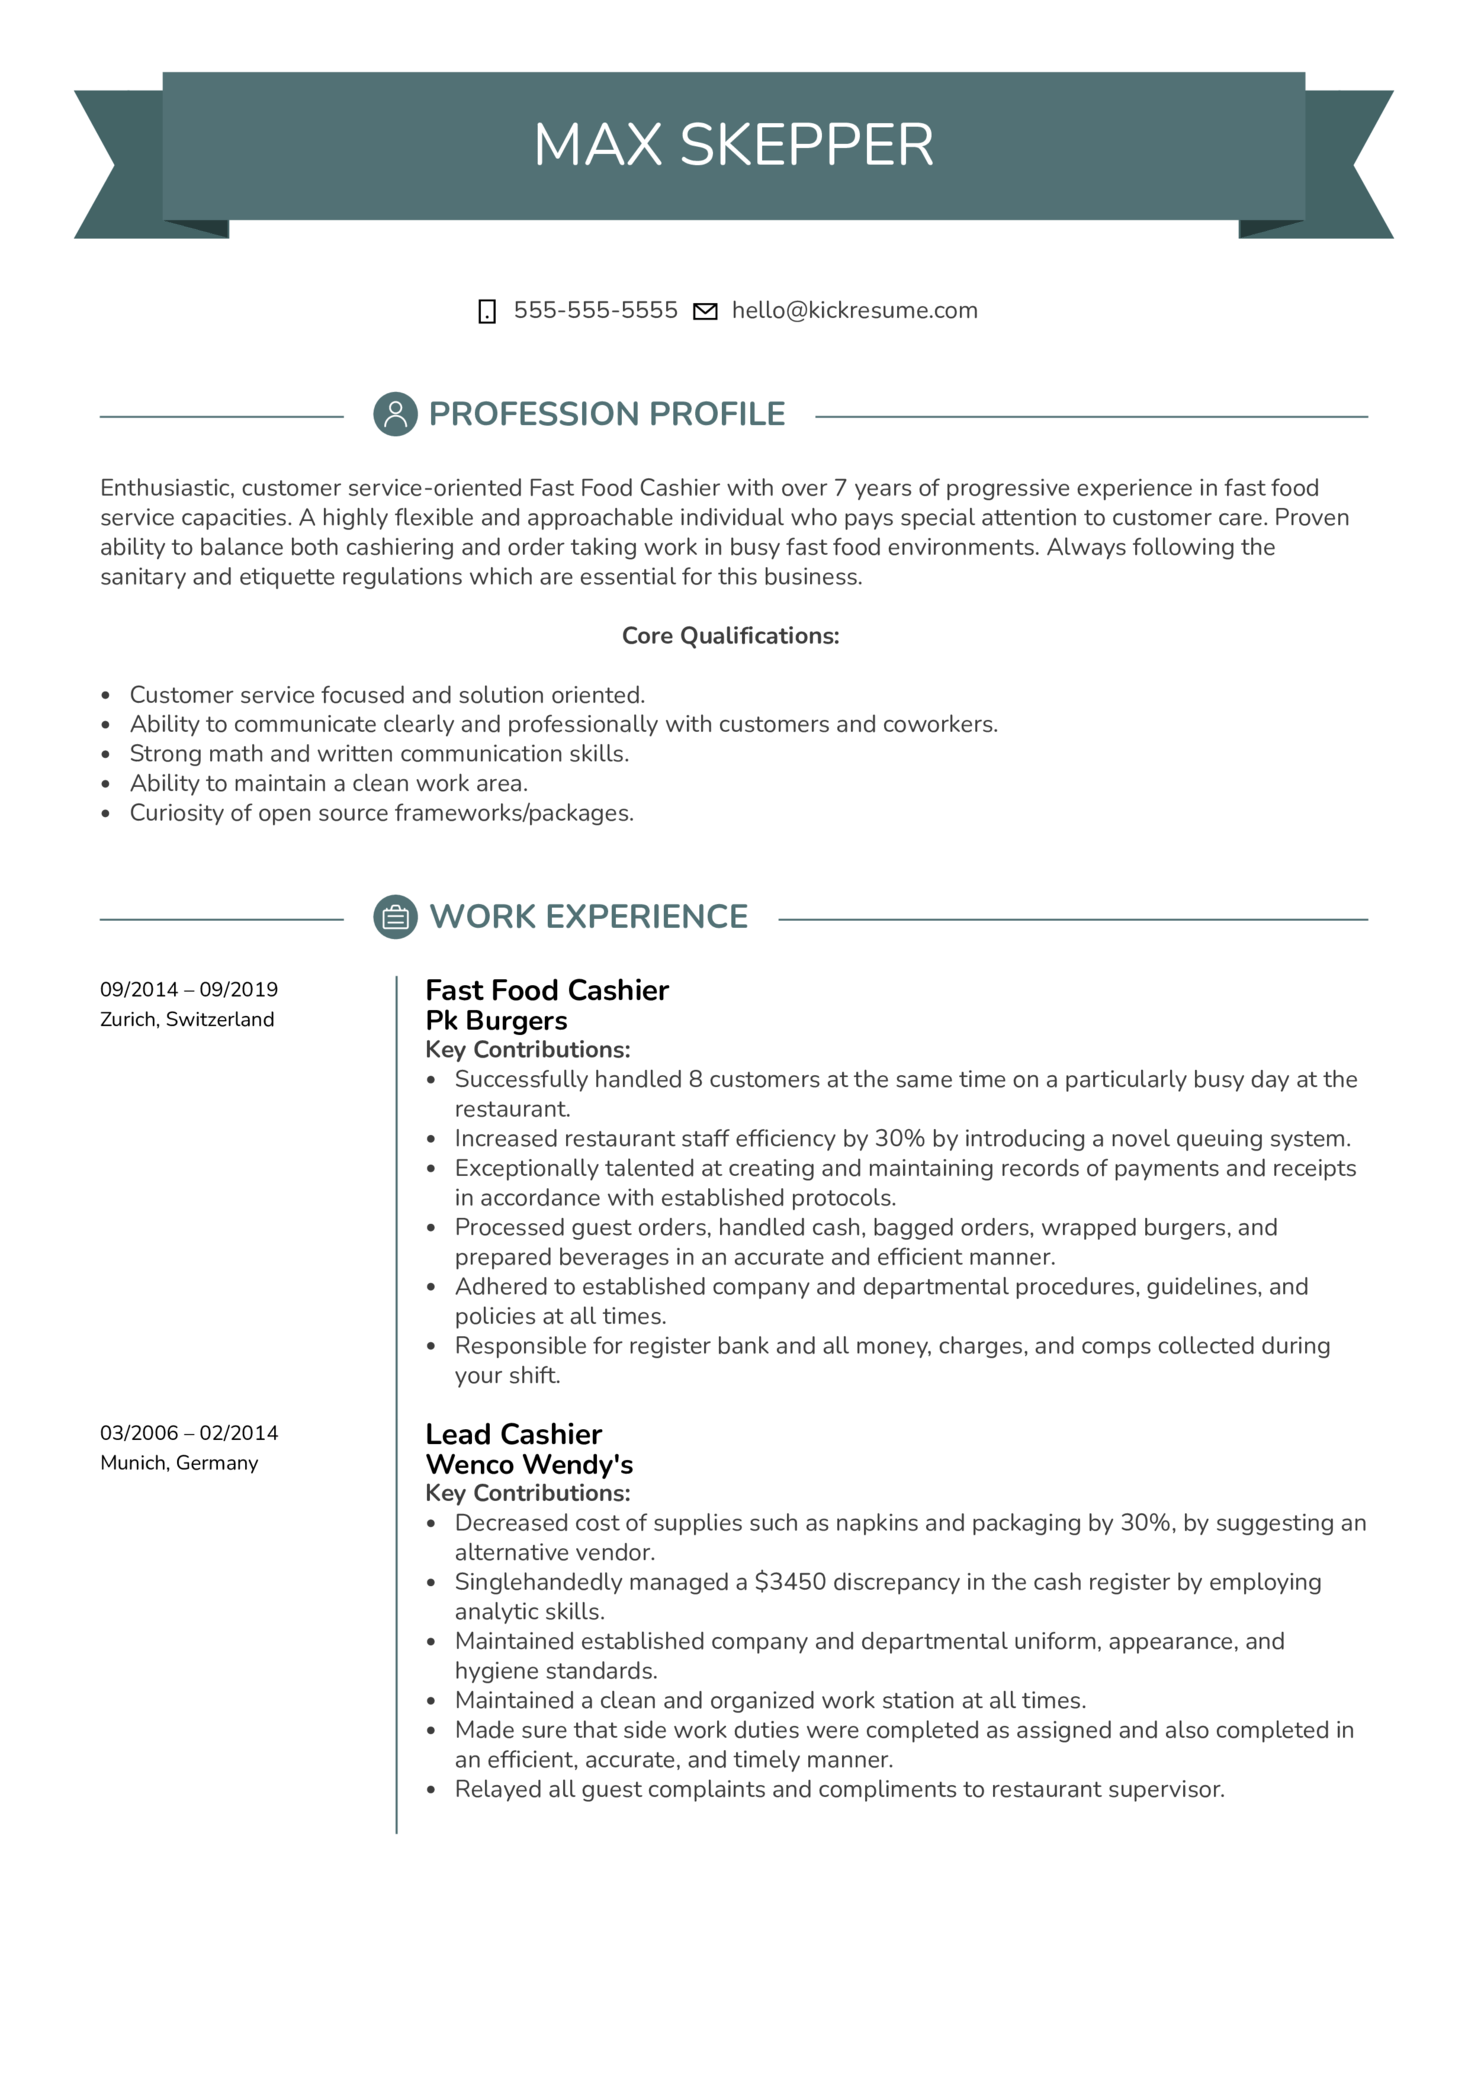 Fast Food Cashier Resume Example Kickresume